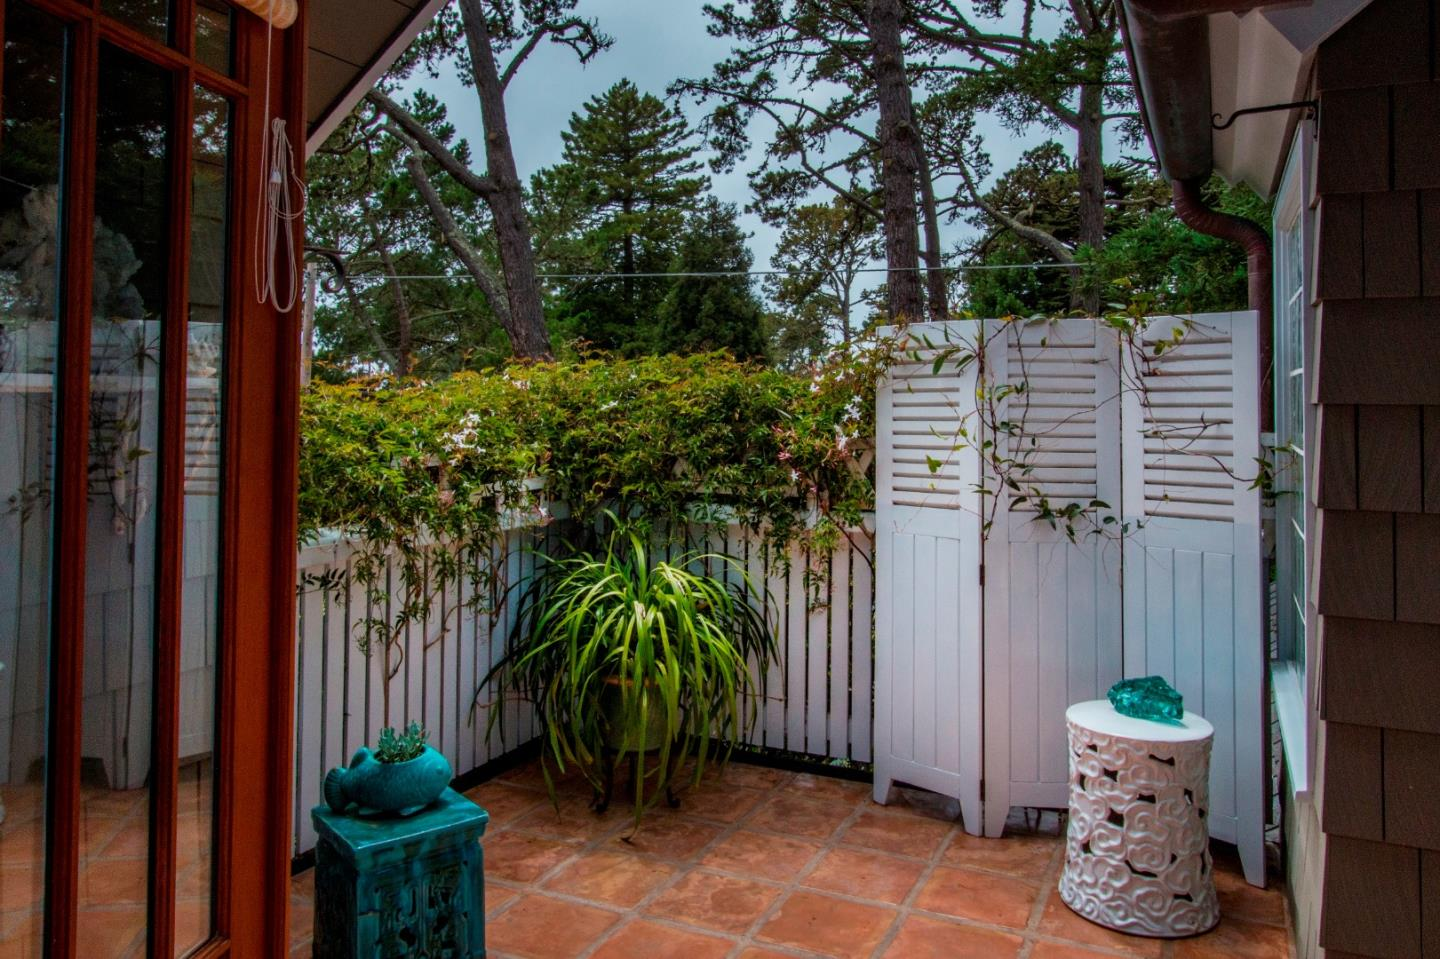 Additional photo for property listing at 0 Santa Rita 2se Of 1st  CARMEL, CALIFORNIA 93921